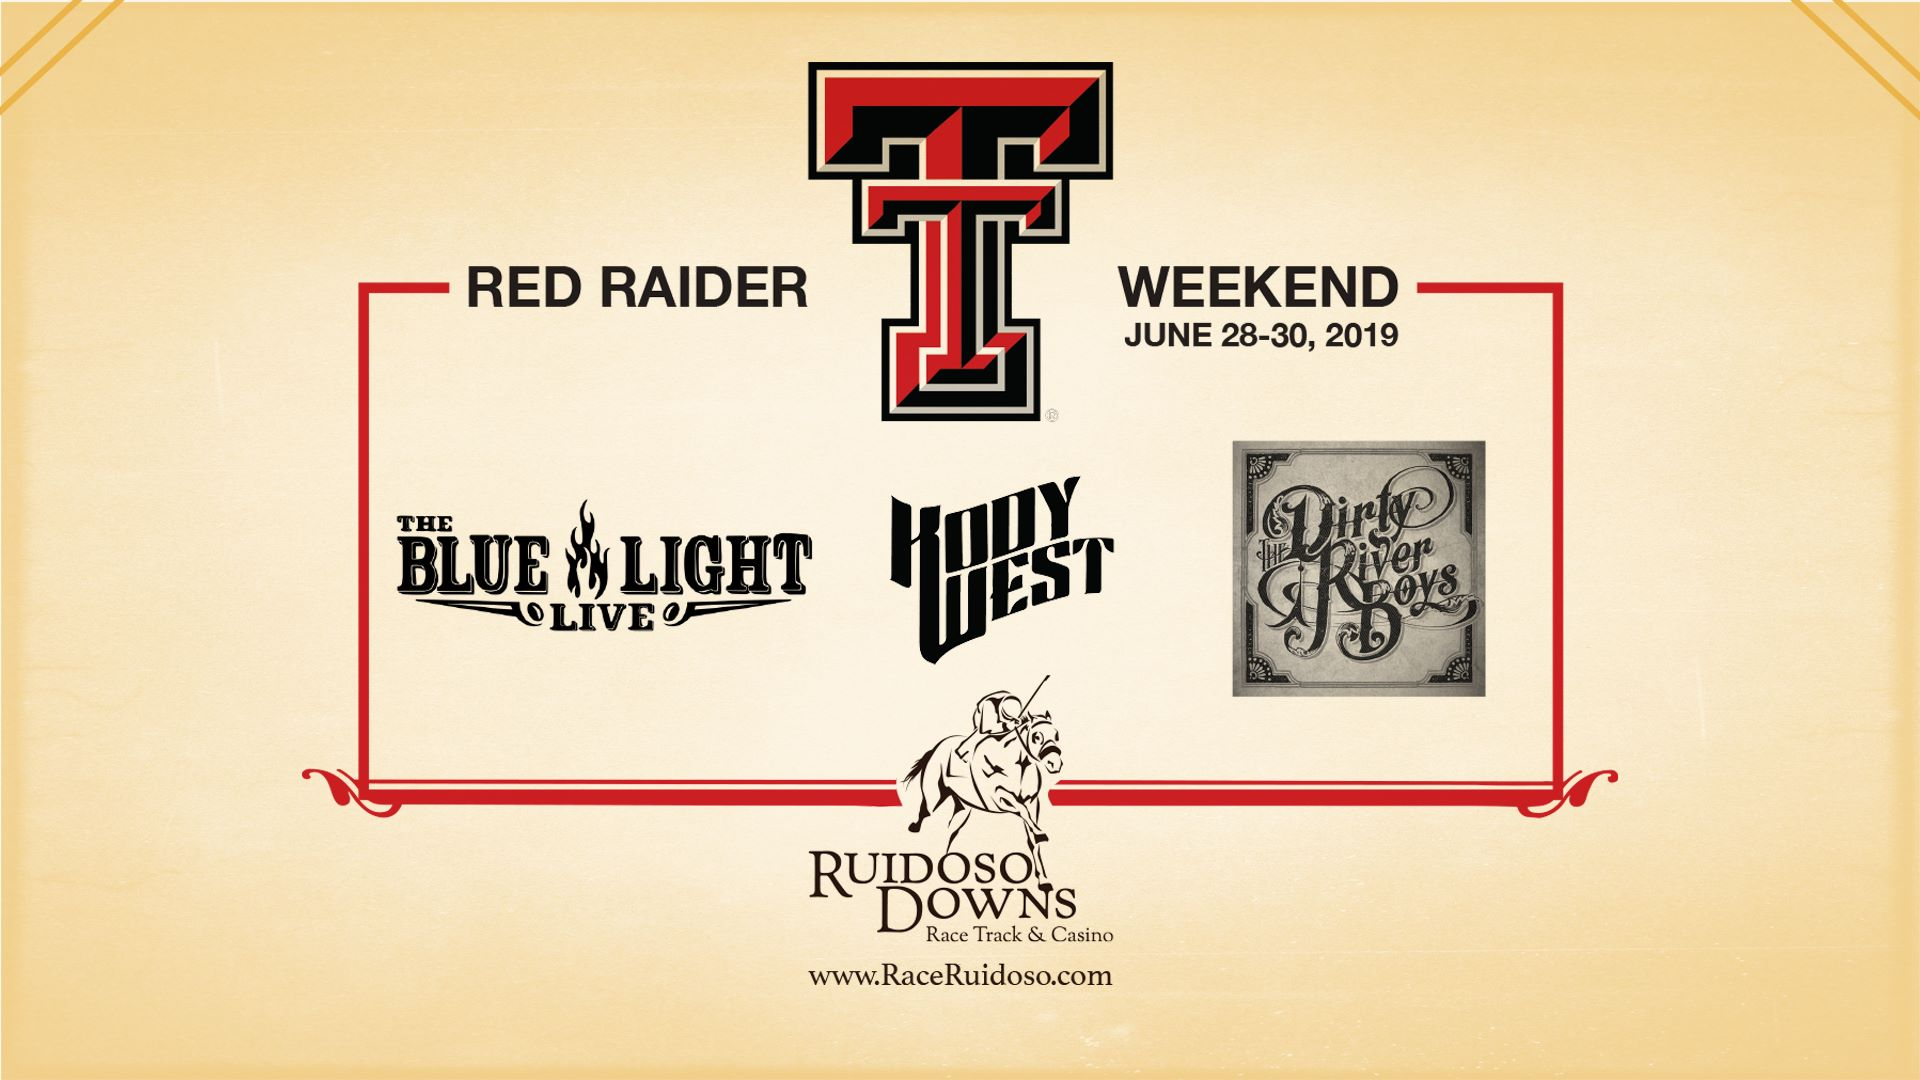 Red Raider Weekend at Ruidoso Downs Race Track